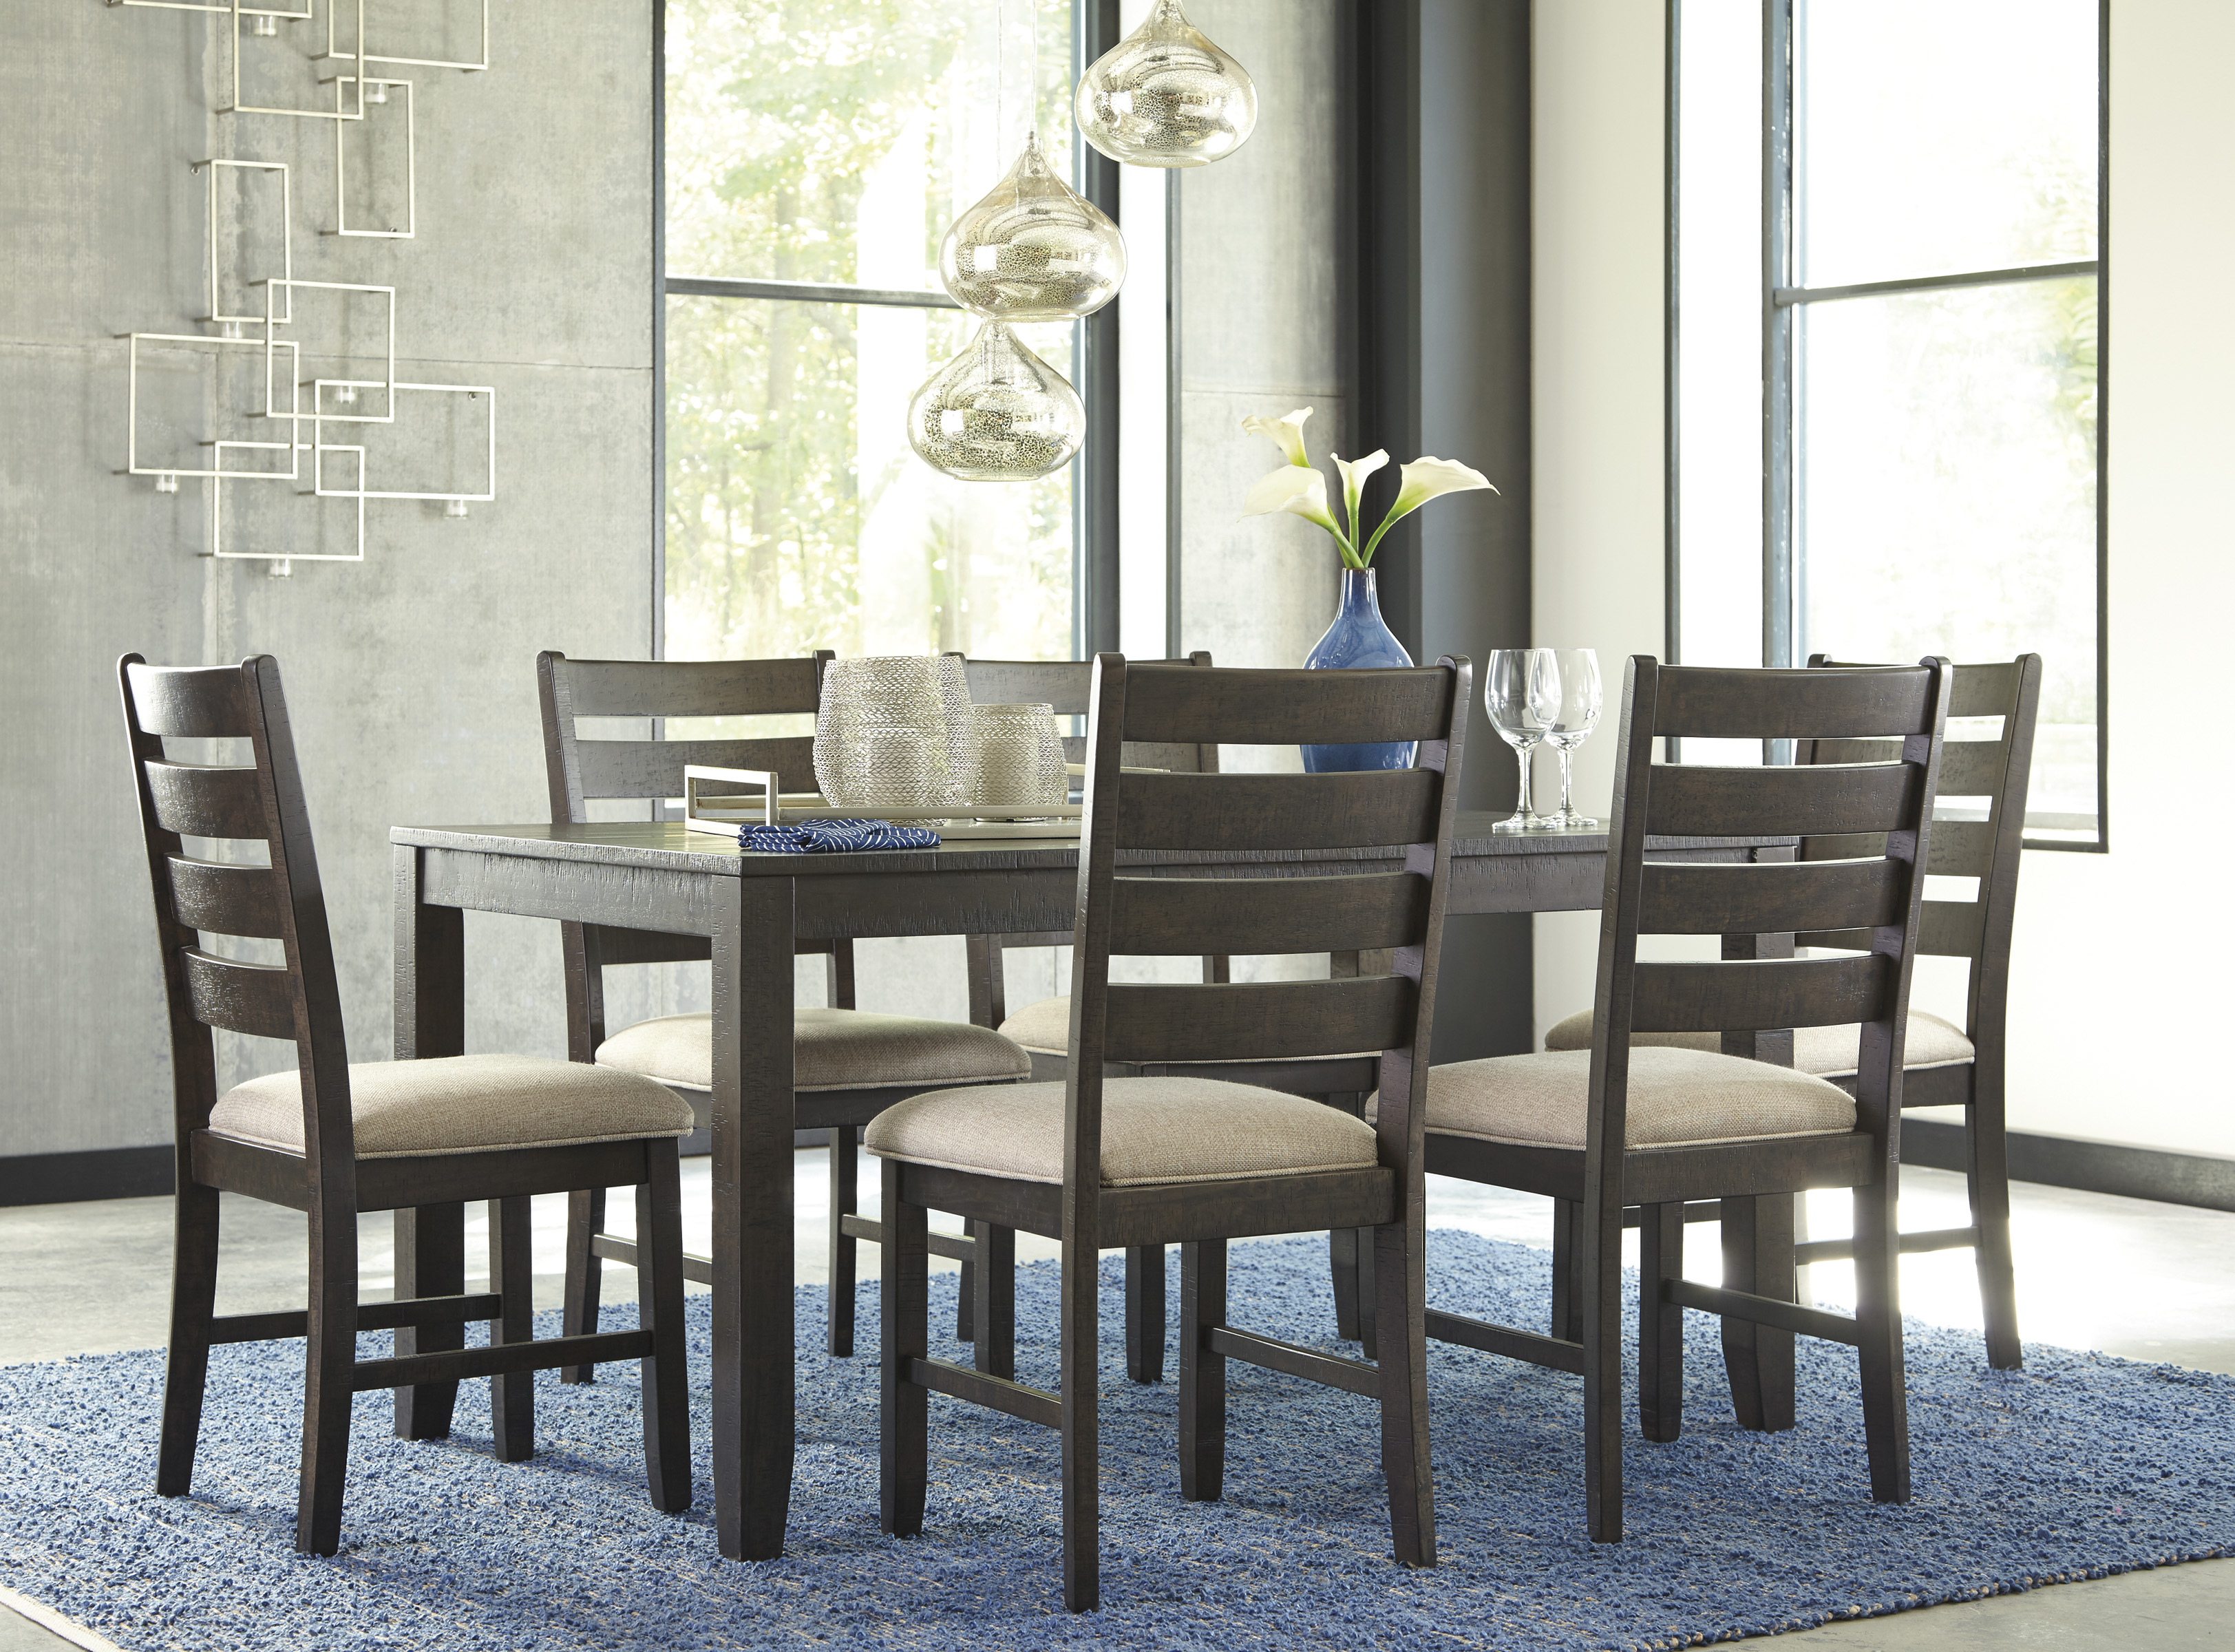 Rokane Casual 7 Pc Dining Table Set With Six Chairs Marjen Of Chicago Chicago Discount